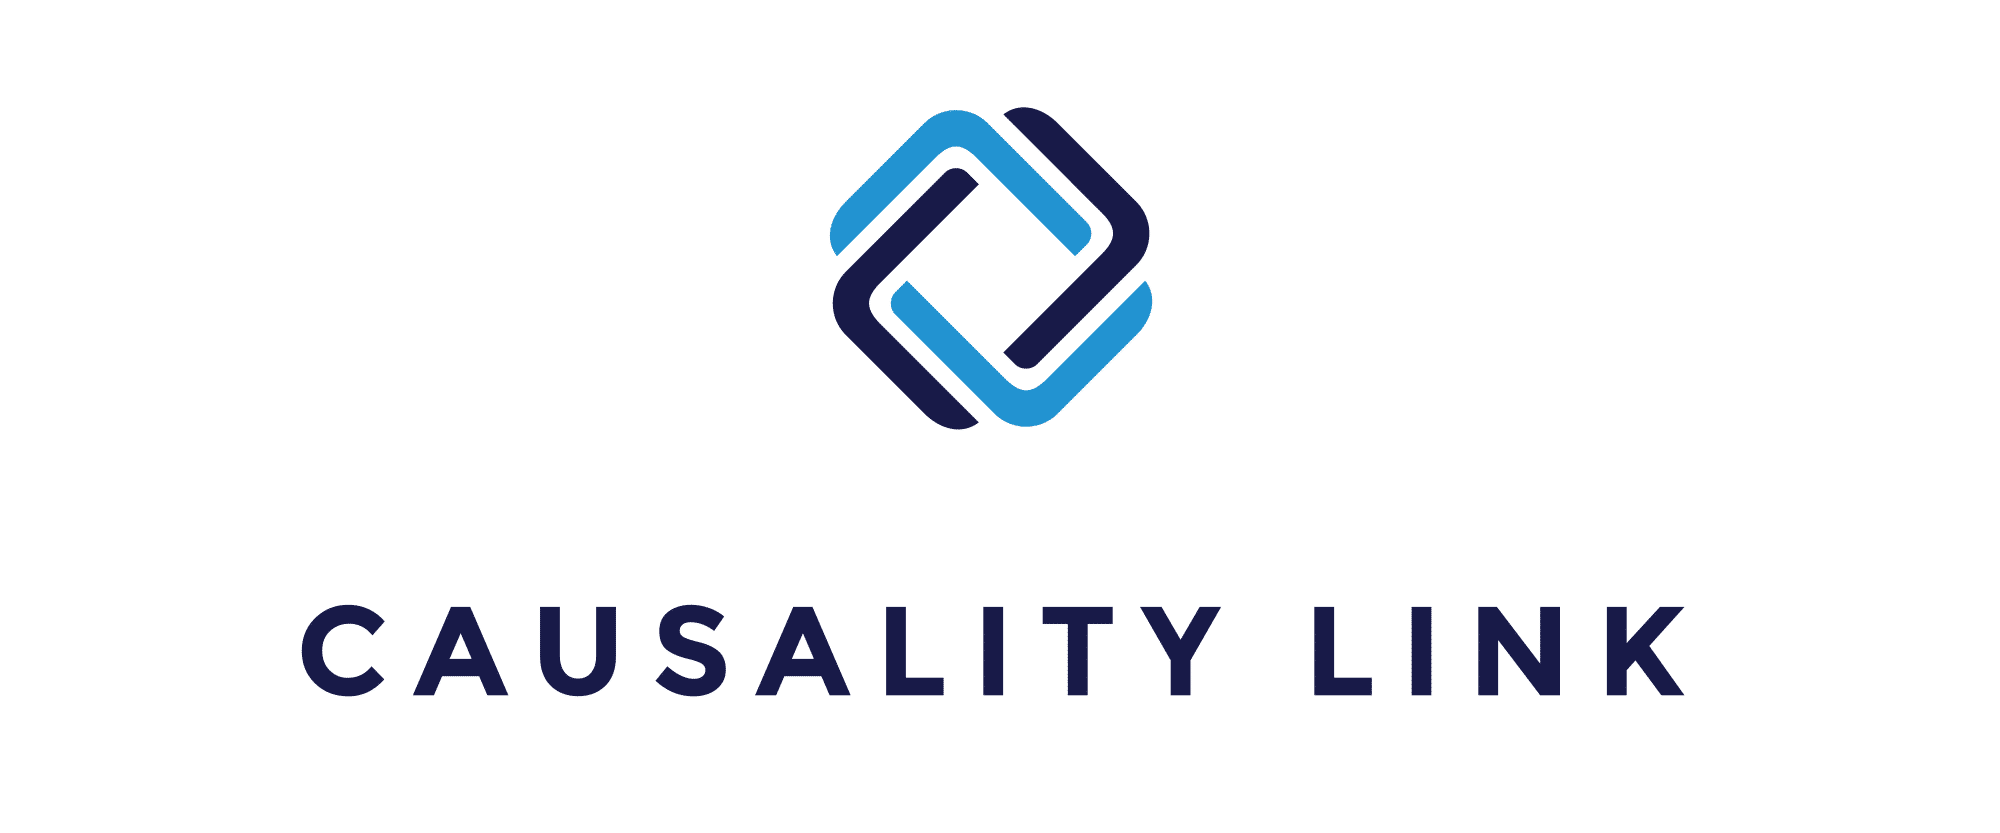 Causality Link